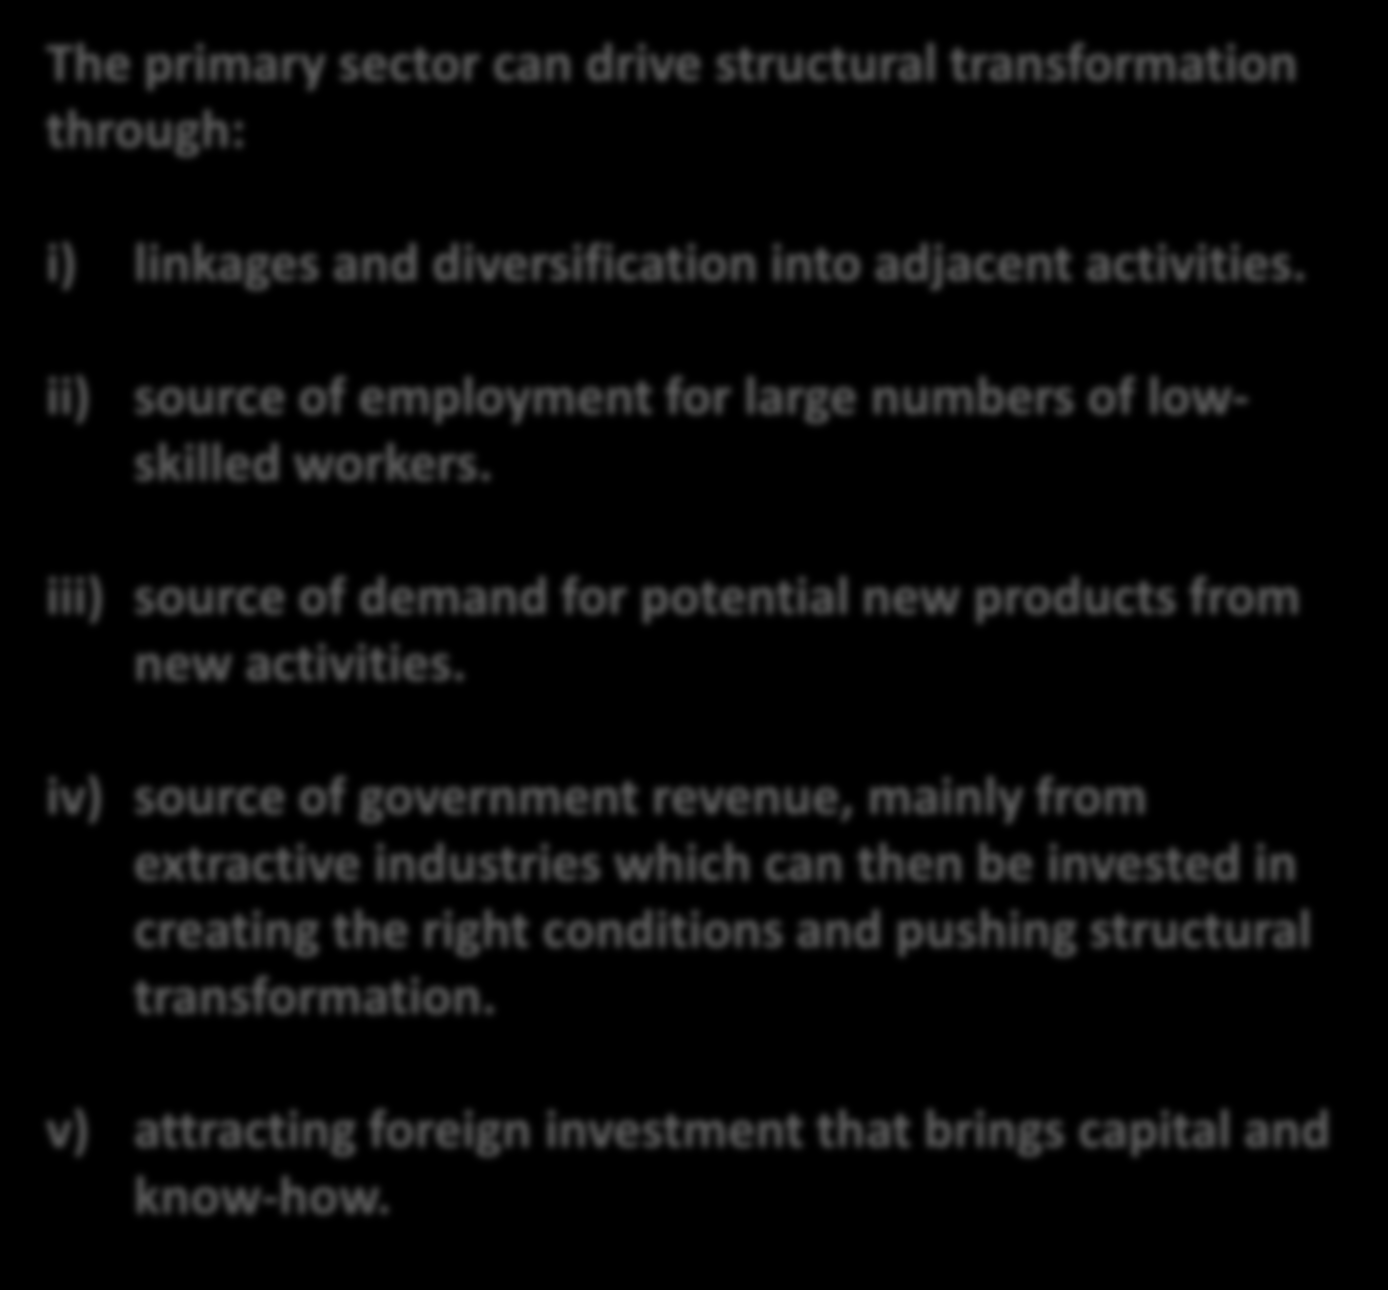 Africa -development Our aims The primary sector can drive structural transformation through: i) linkages and diversification into adjacent activities.